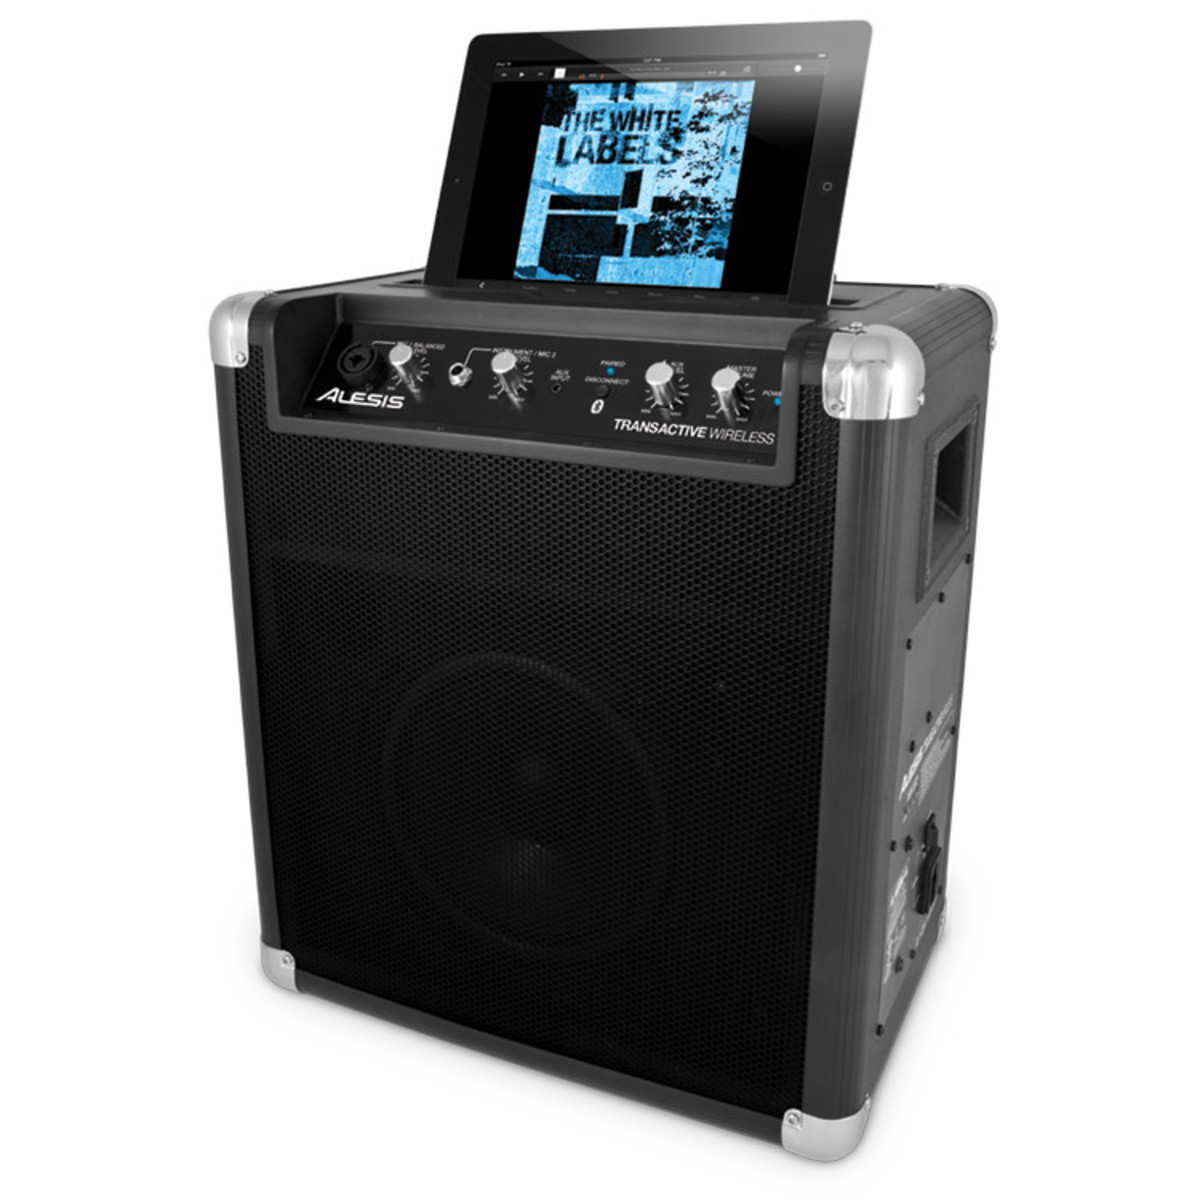 Alesis Transactive Wireless Portable Active Pa Speaker